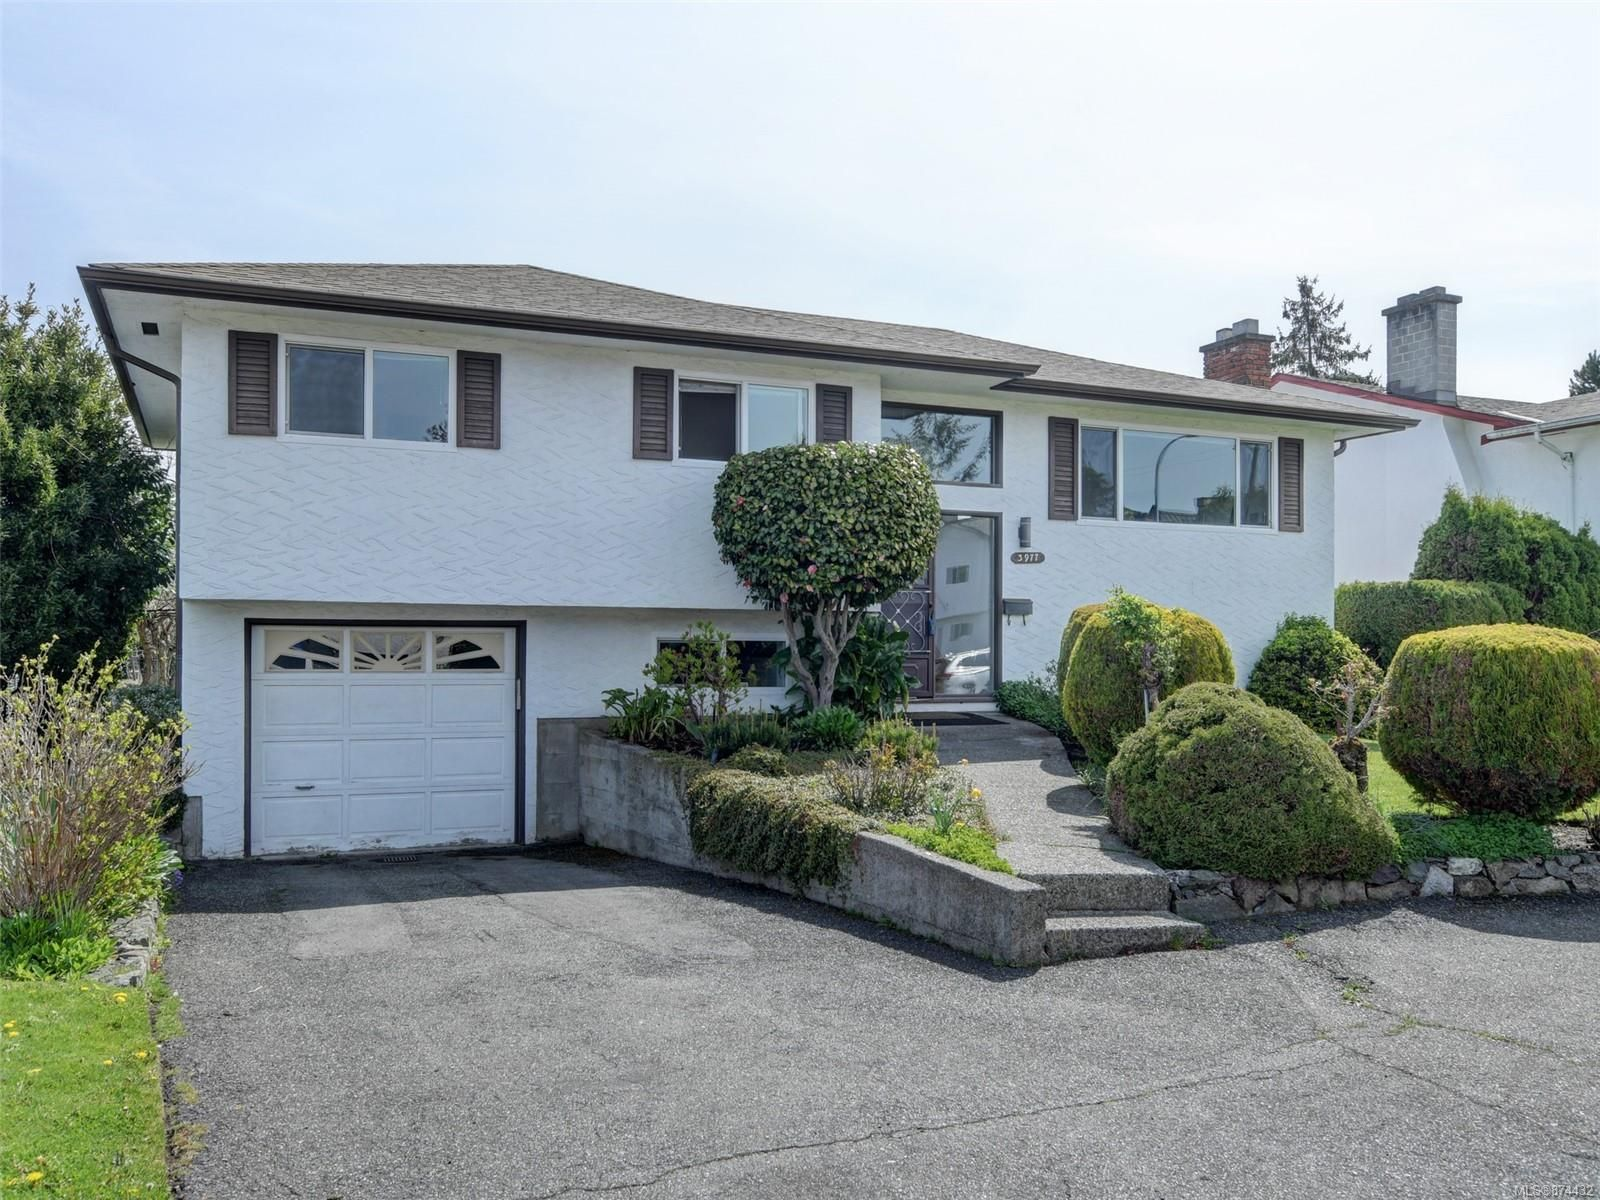 Main Photo: 3977 Birchwood St in : SE Lambrick Park House for sale (Saanich East)  : MLS®# 874432